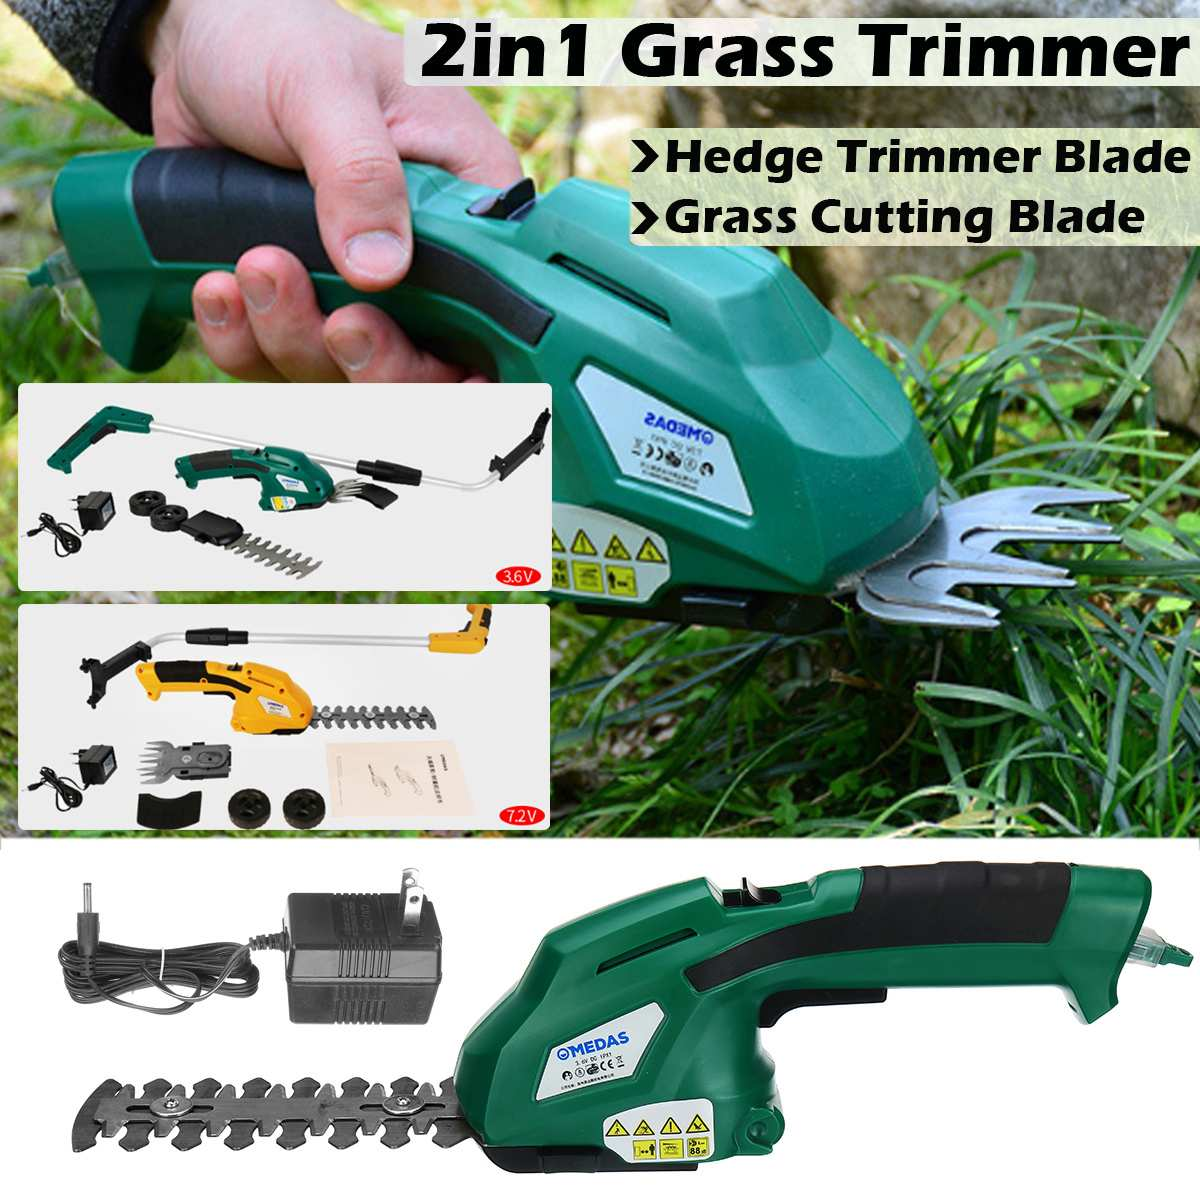 Electric Grass Trimmer Hedge Trimmer  7.2V 3.6V Cordless Lawn Mower Pruning Shears Garden Tools